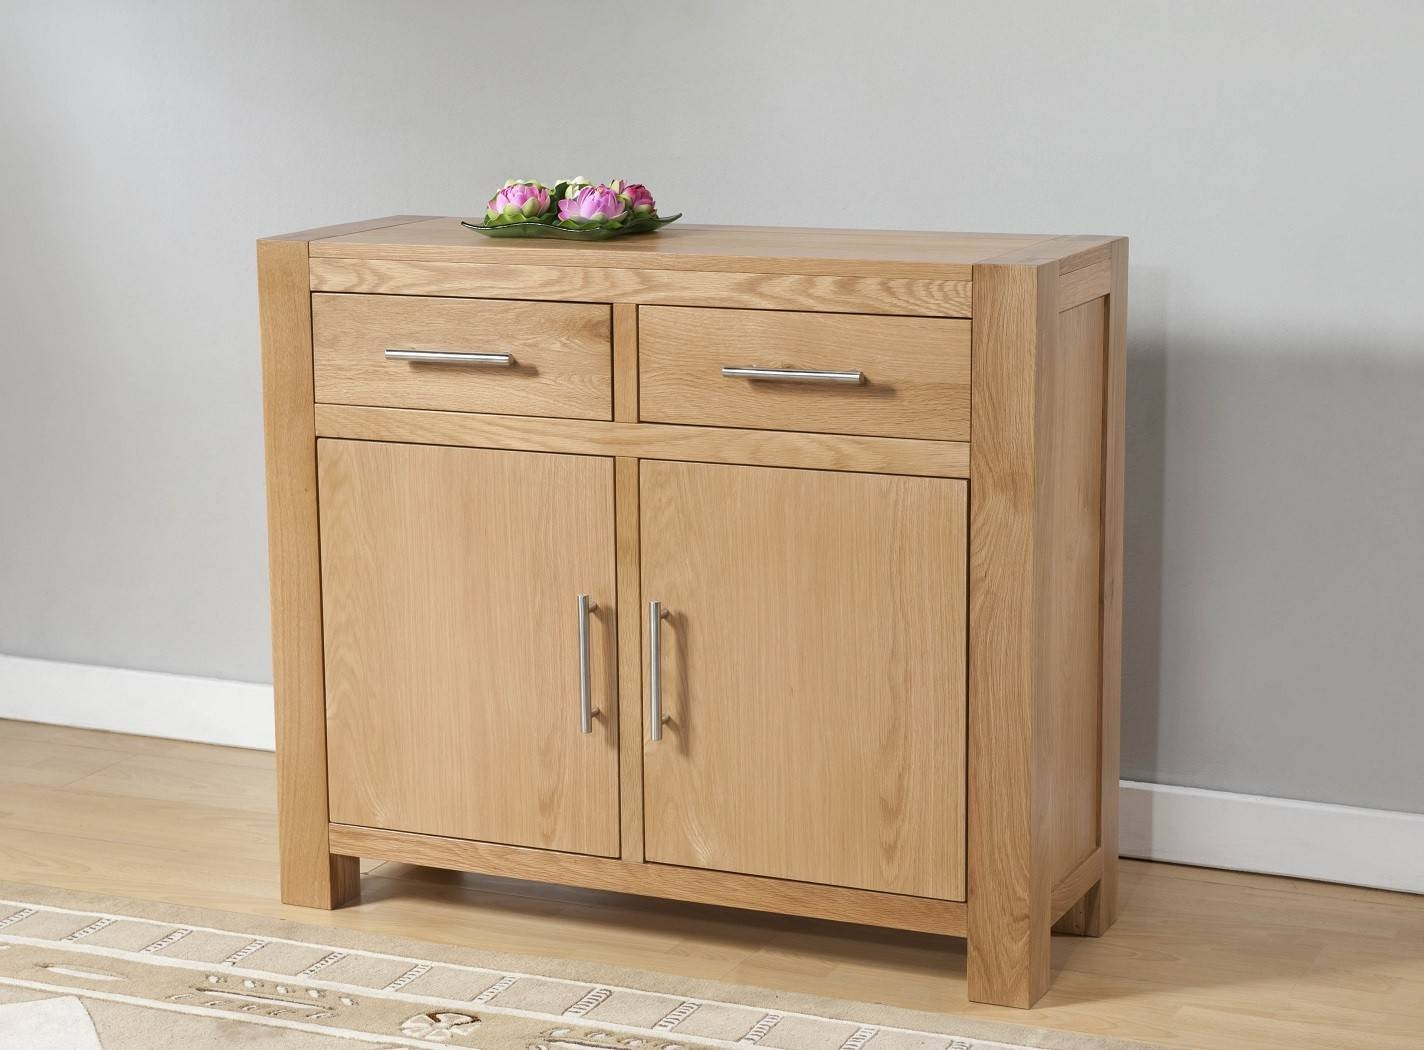 Aylesbury Contemporary Light Oak Small Sideboard | Oak Furniture Uk with regard to Small Wooden Sideboards (Image 4 of 30)